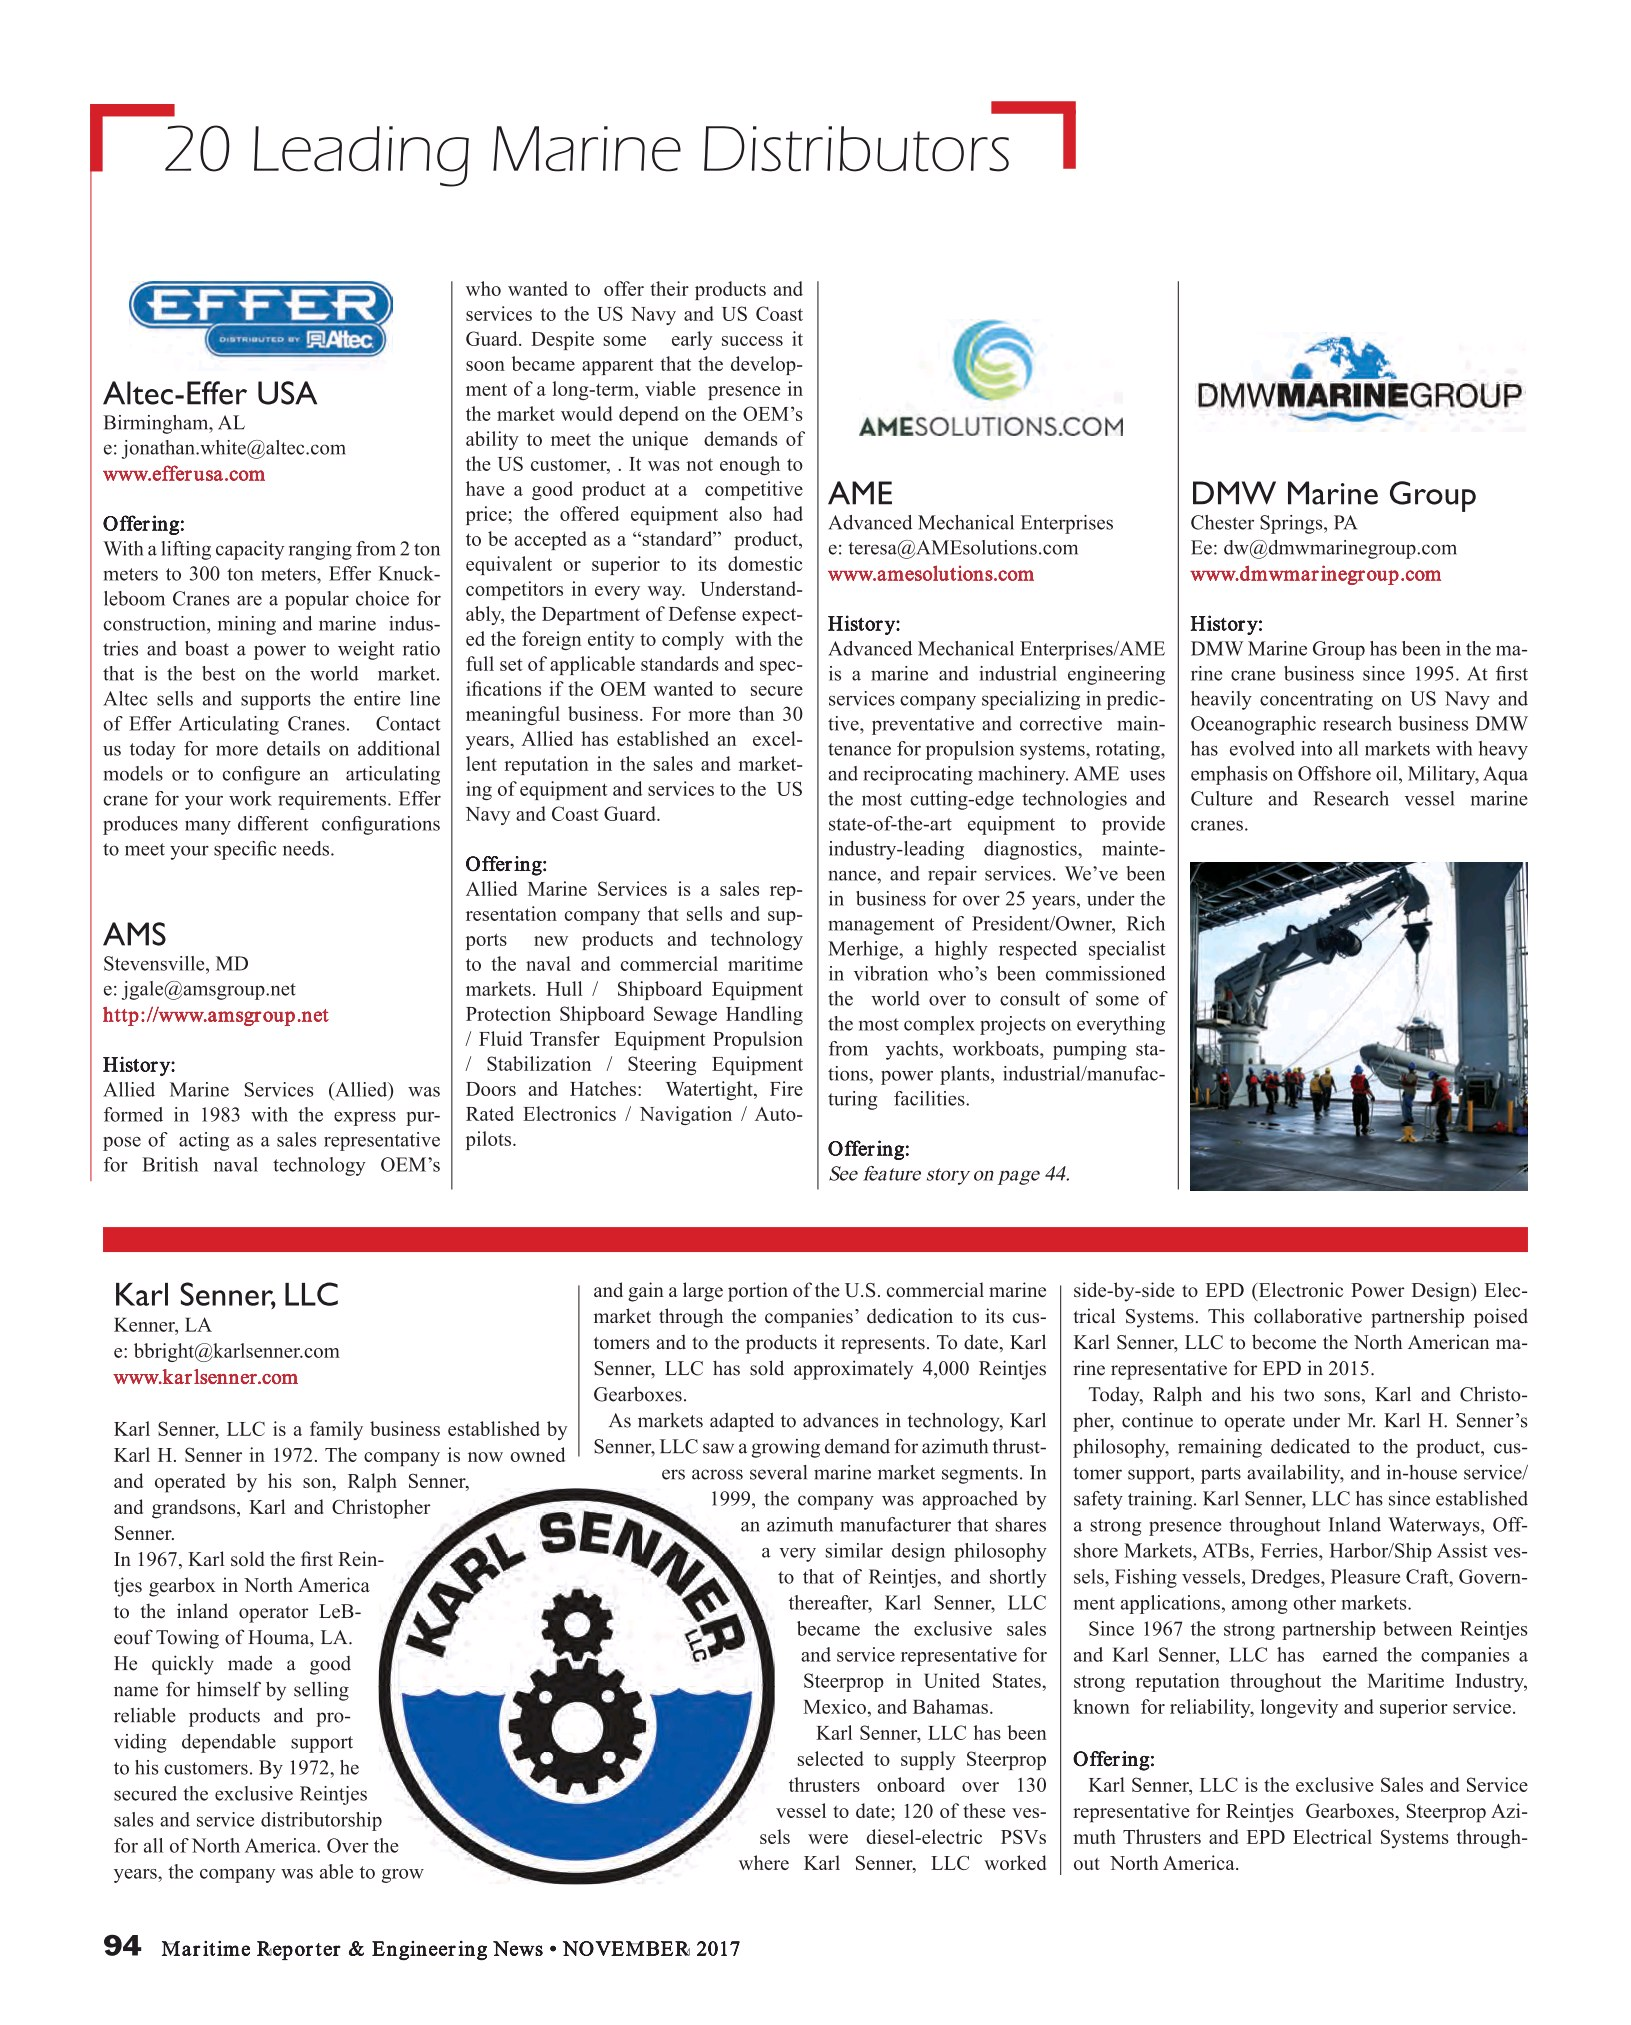 Maritime Reporter and Engineering news, November 2017 Issue